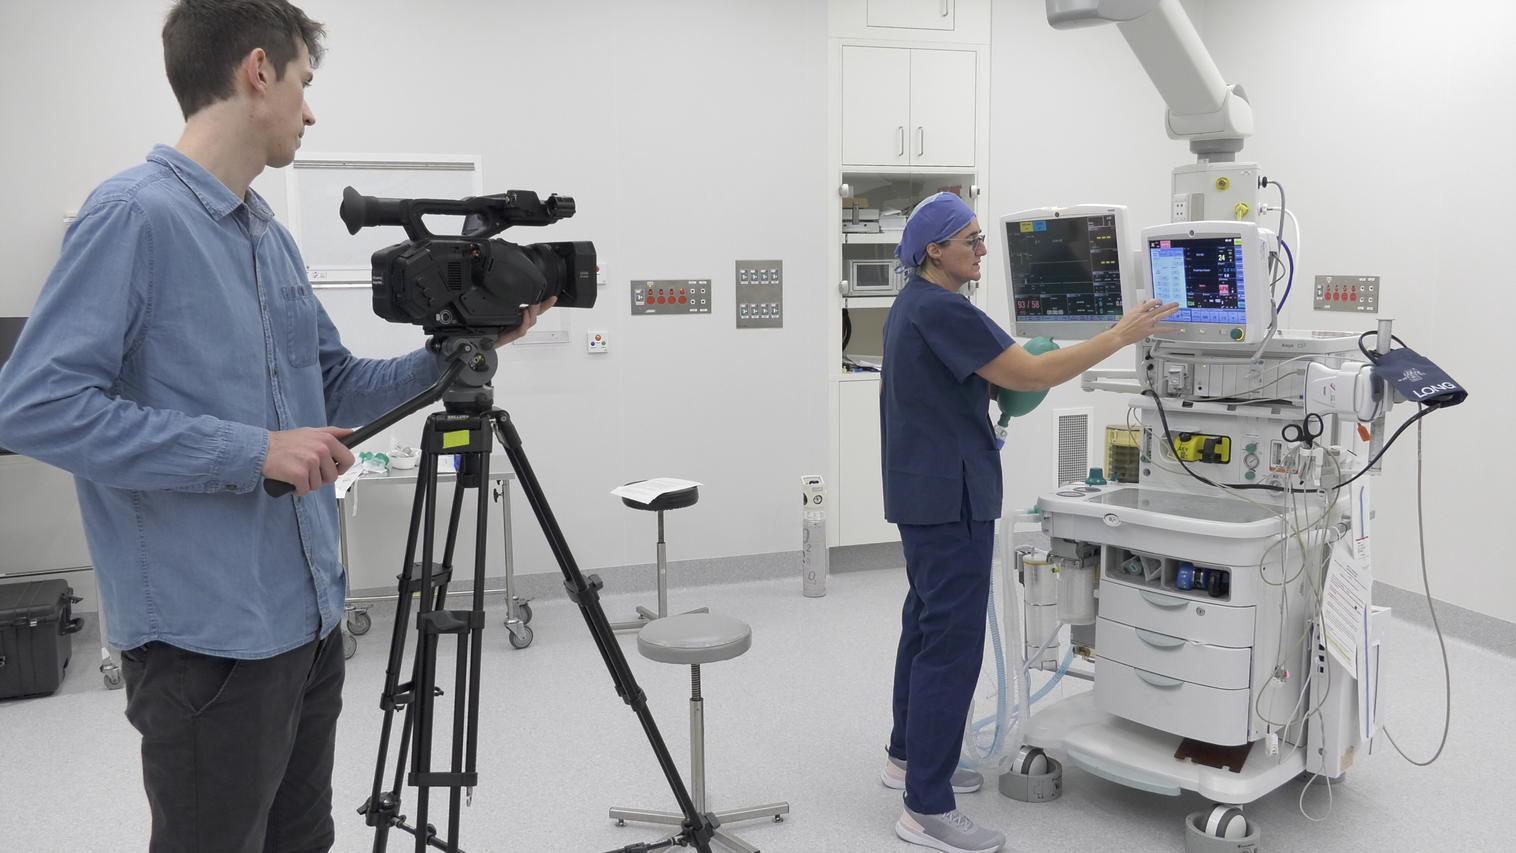 a cameraman films a doctor at work, checking a machine